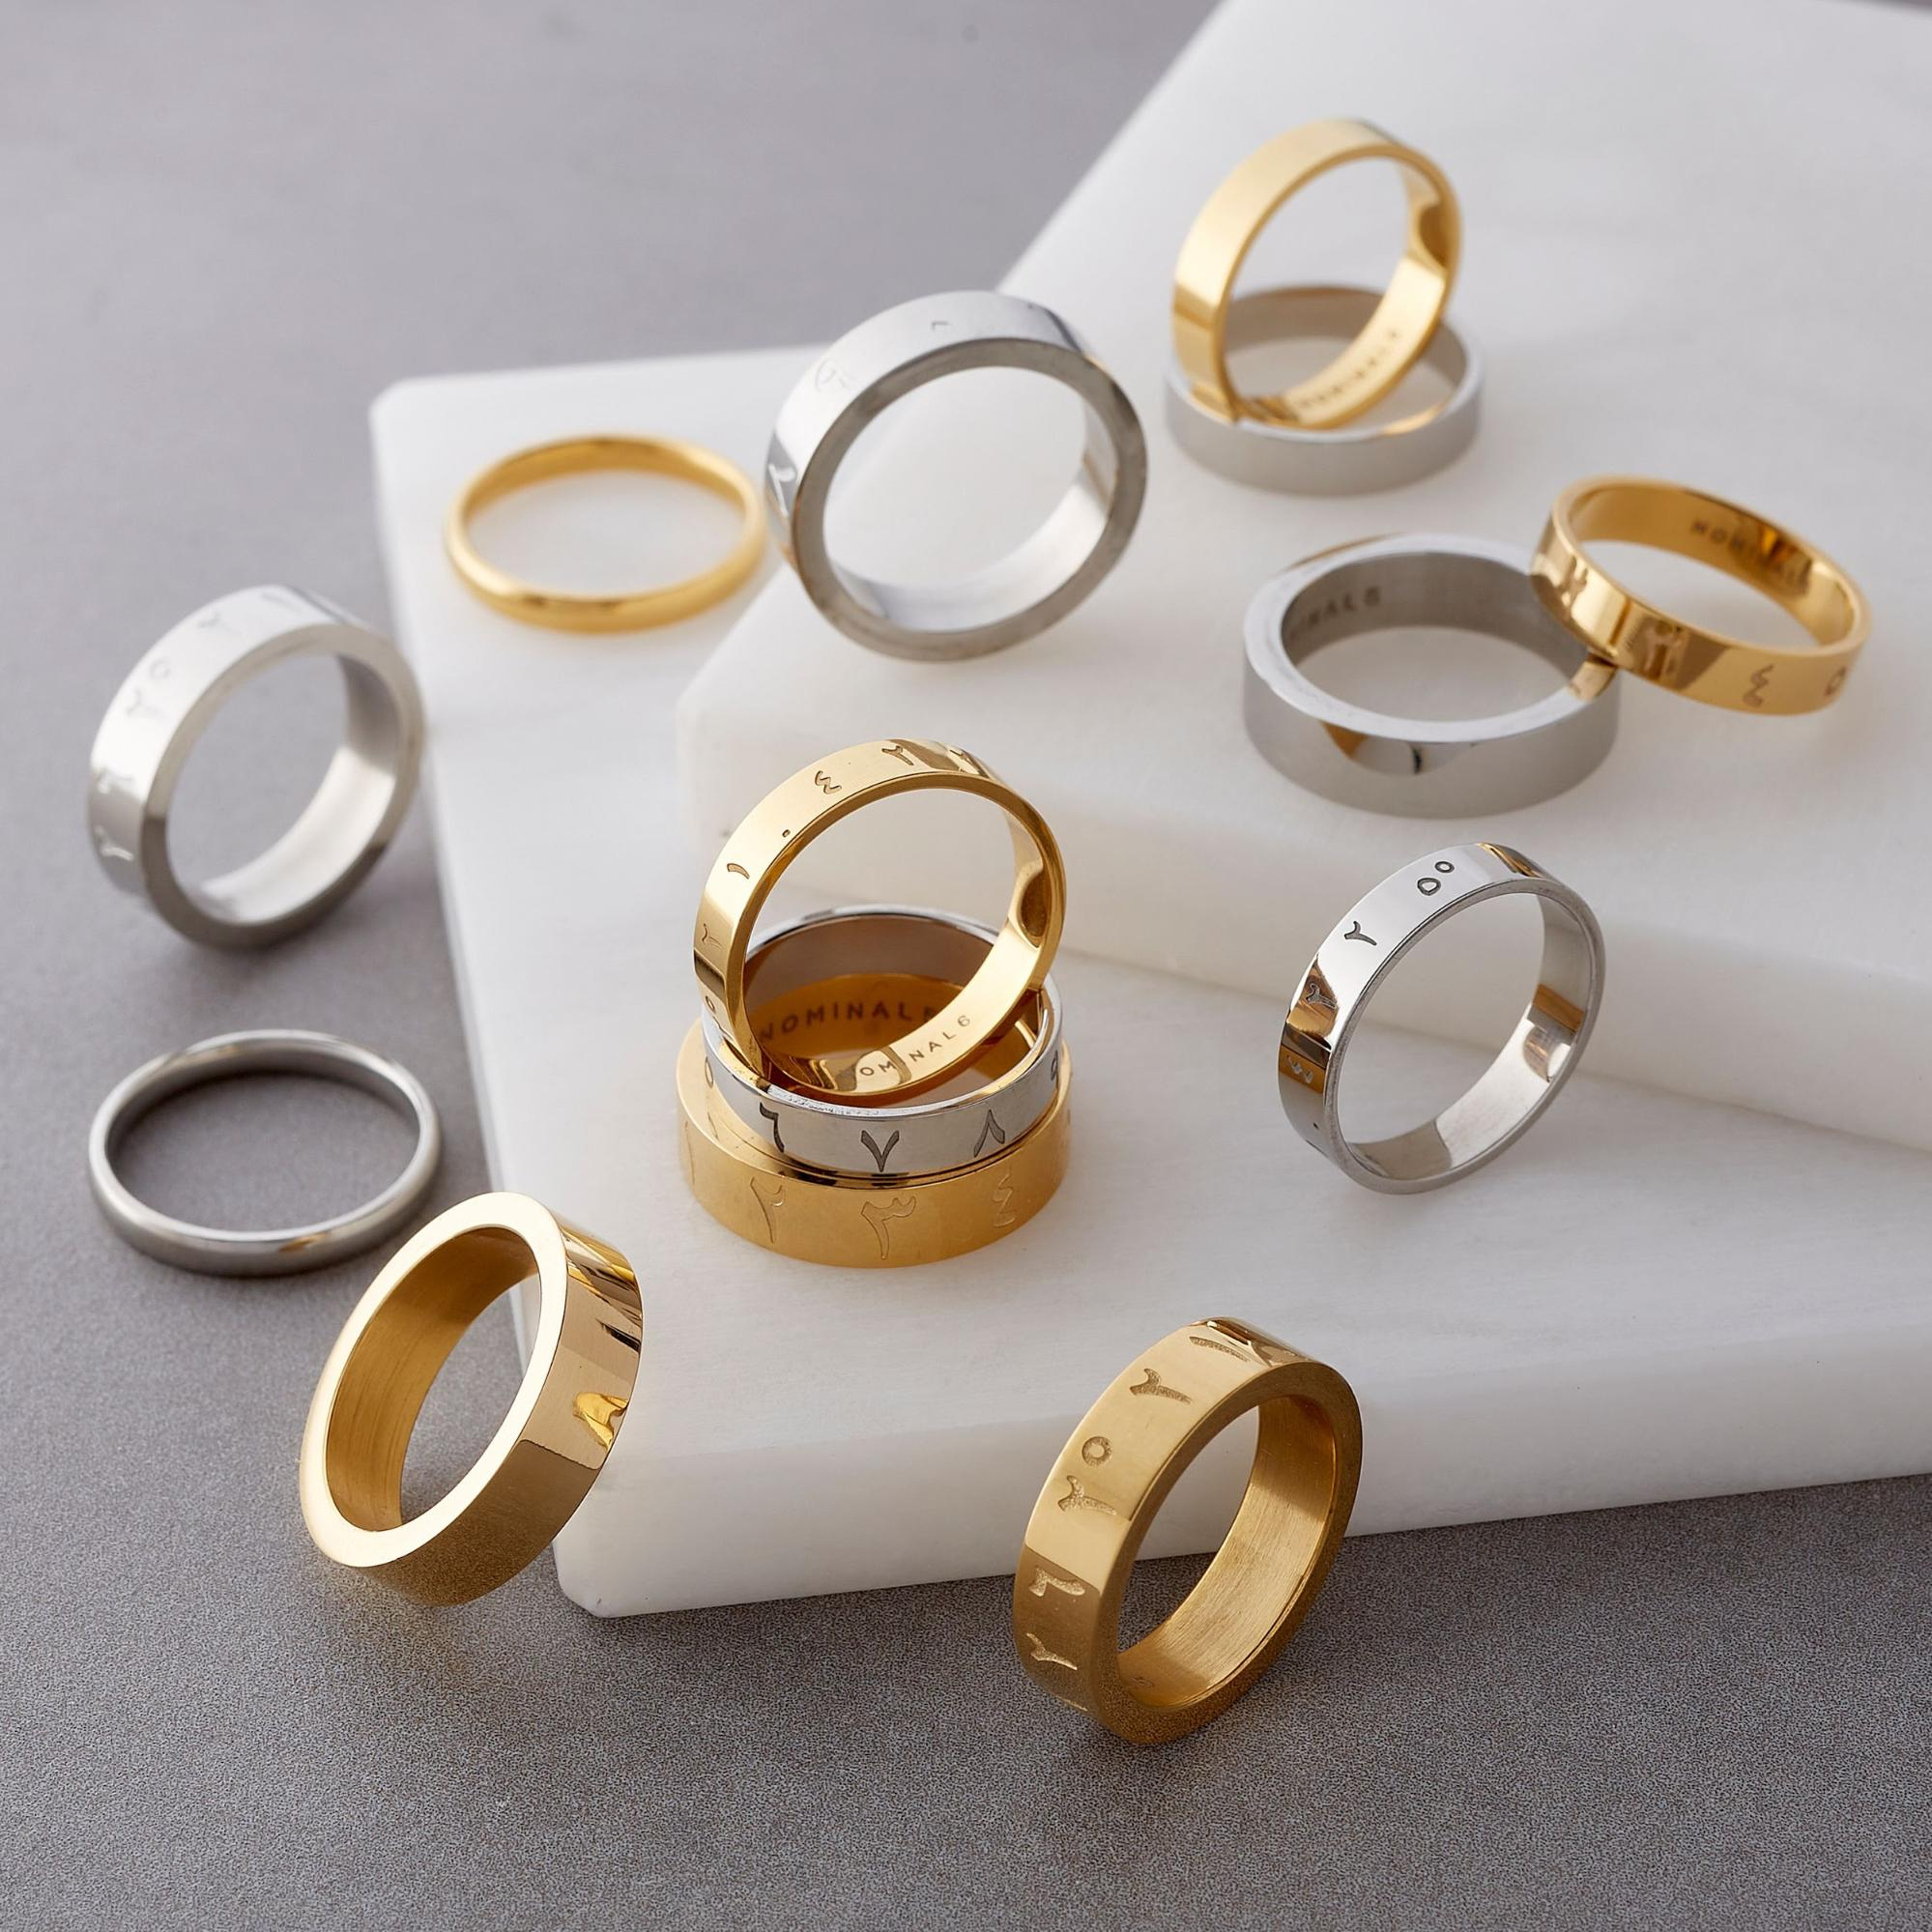 A selection of rings from Nominal in gold and silver.